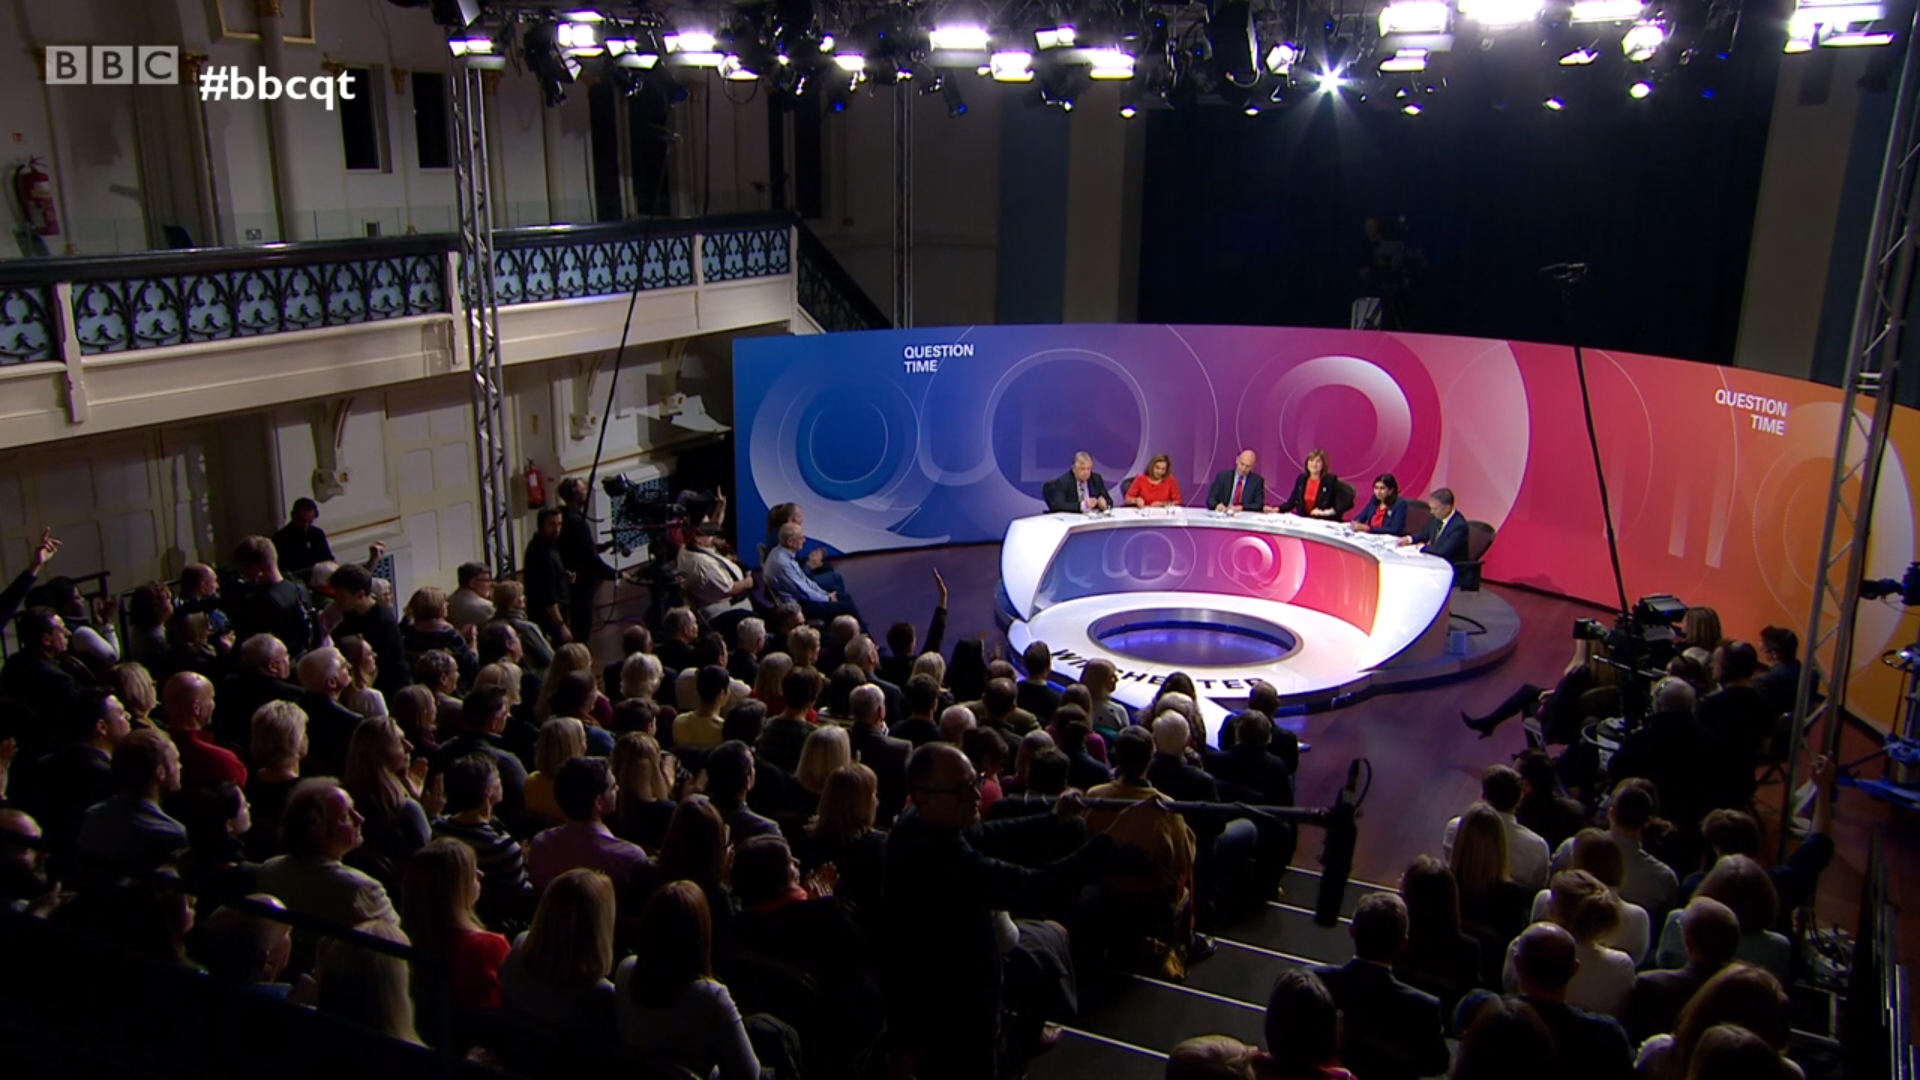 PODCAST: BBC Question Time has a problem ... and it's not mouldy jam